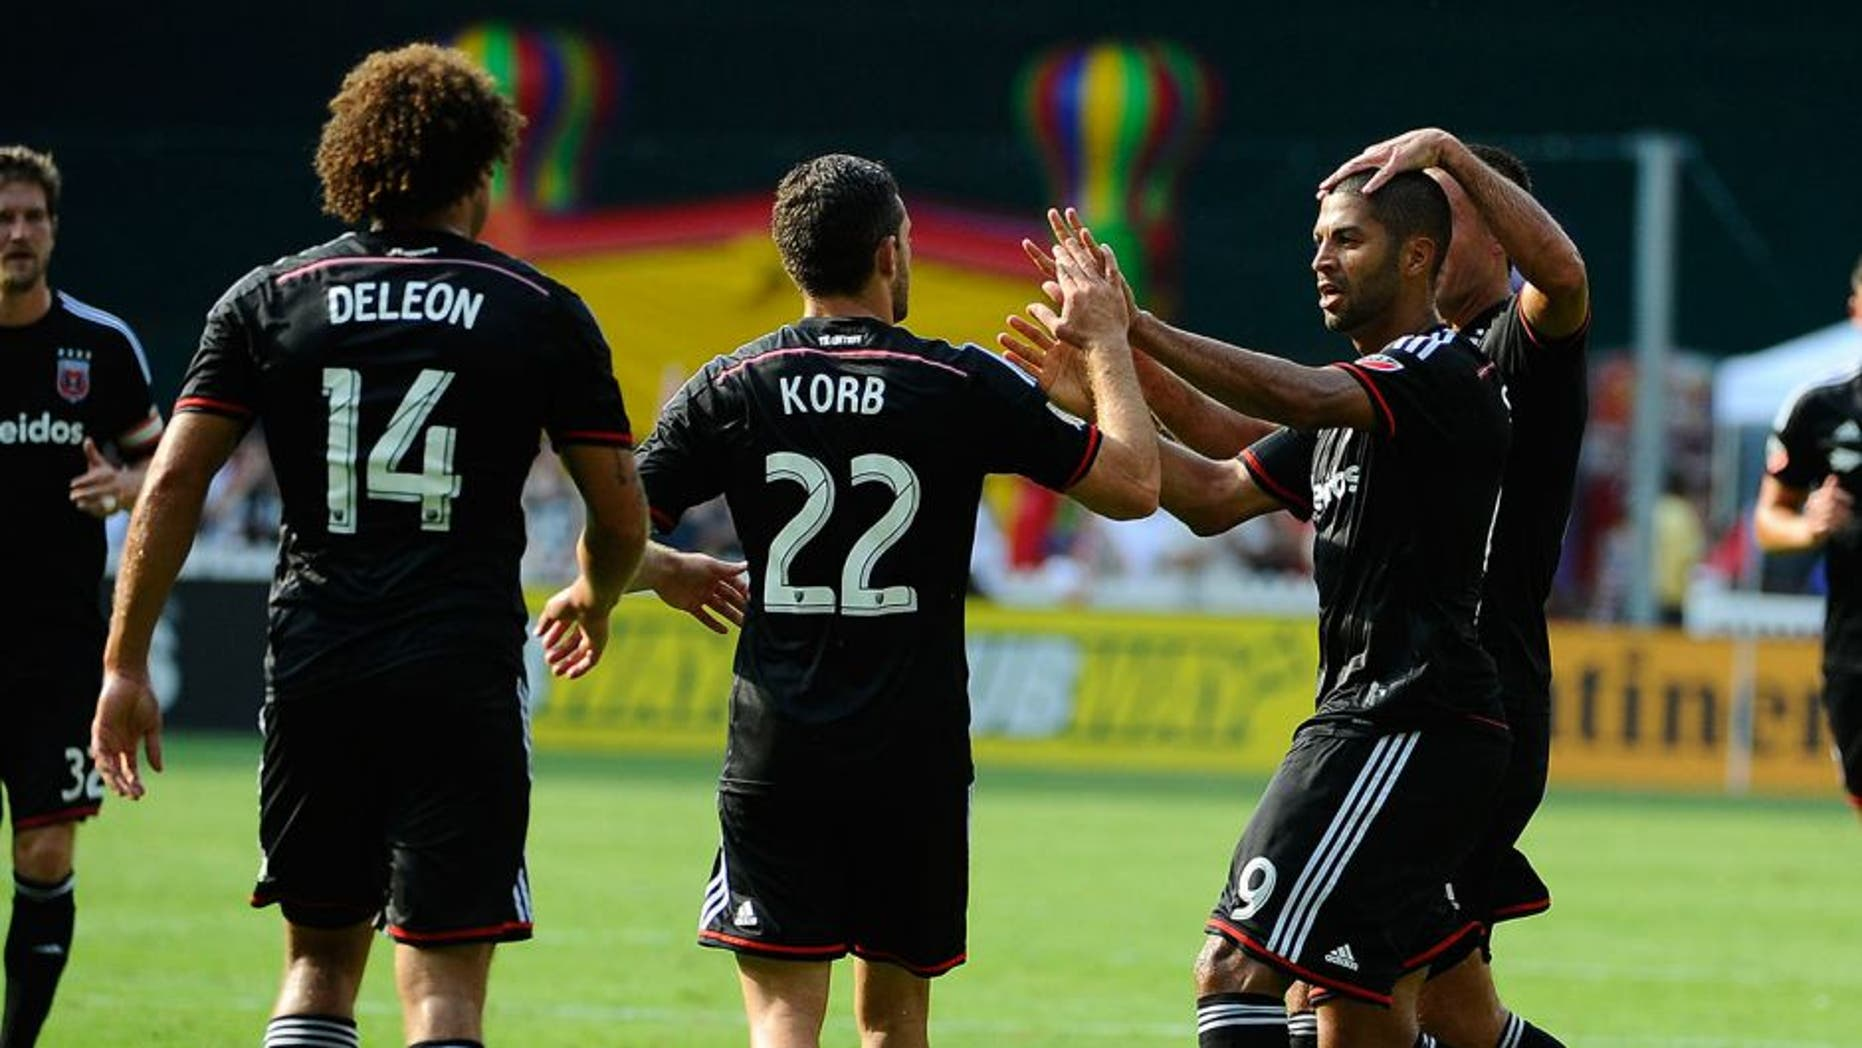 Jul 26, 2015; Washington, DC, USA; D.C. United forward Alvaro Saborio (9) is congratulated by teammates after scoring a goal against the Philadelphia Union during the first half at Robert F. Kennedy Memorial. Mandatory Credit: Brad Mills-USA TODAY Sports